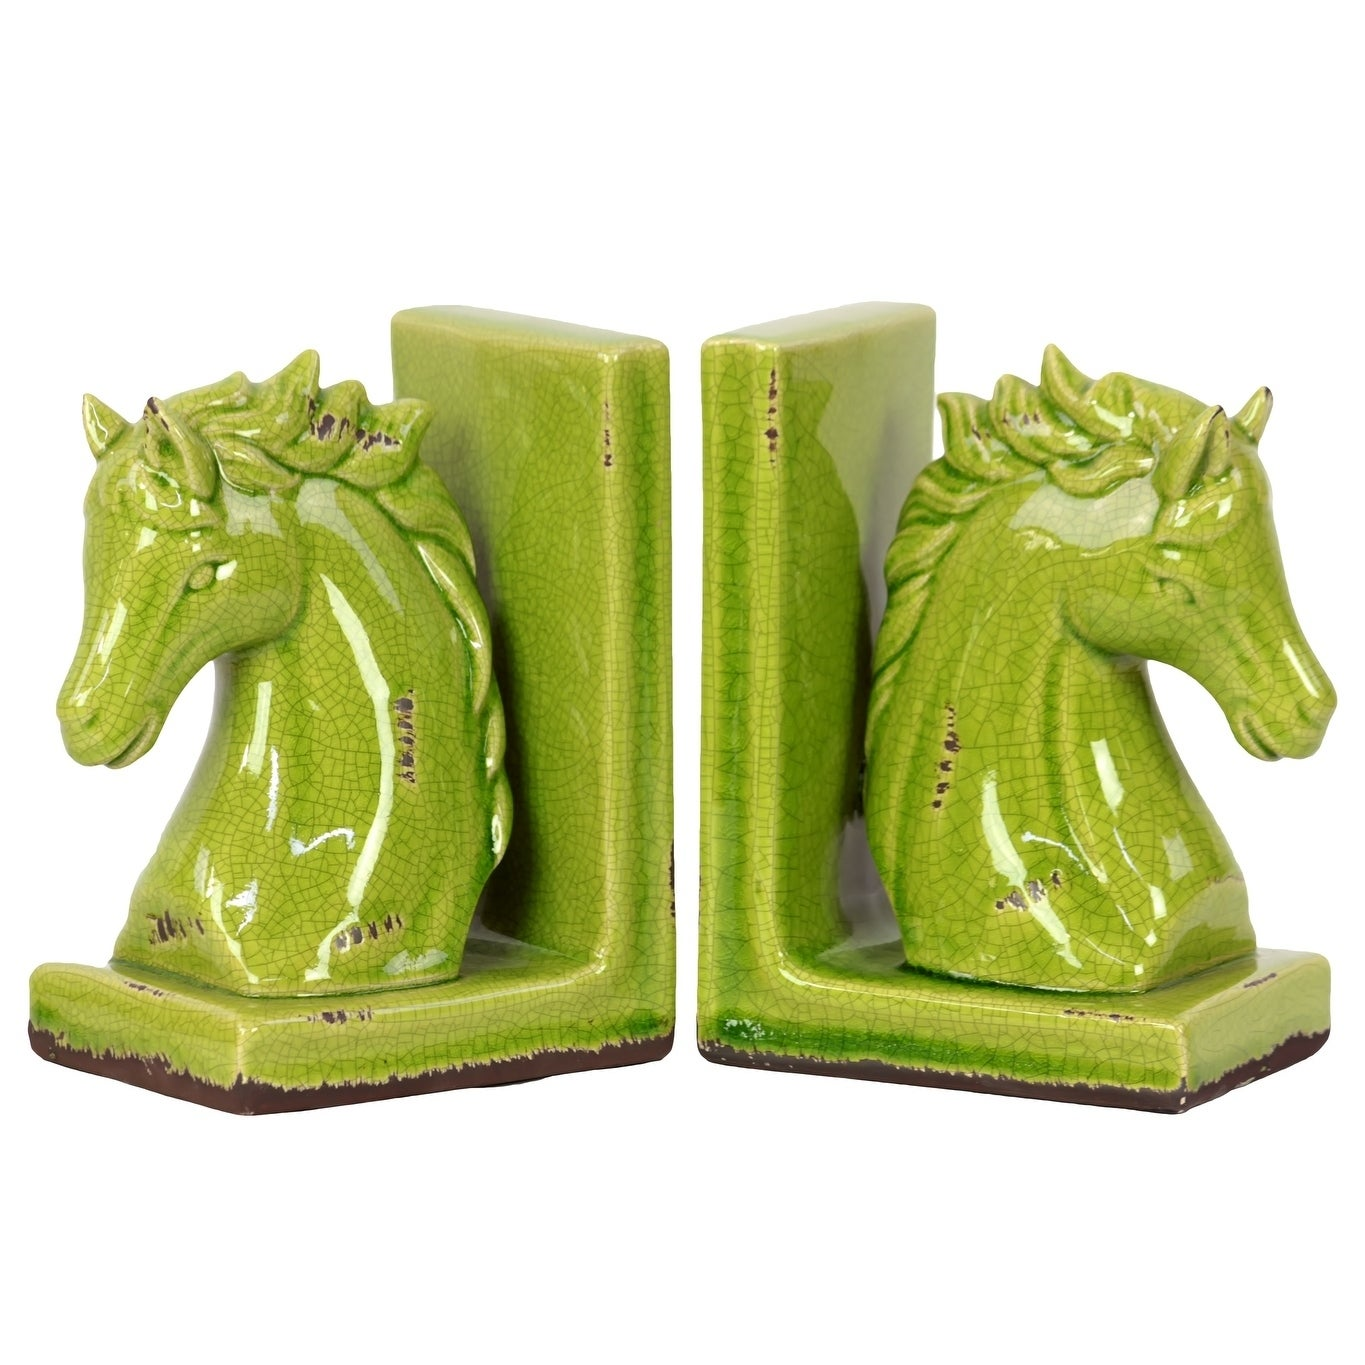 Shop Black Friday Deals On Utc11146 Stoneware Horse Head On Base Bookend Set Of Two Distressed Gloss Finish Yellow Green Overstock 9261858